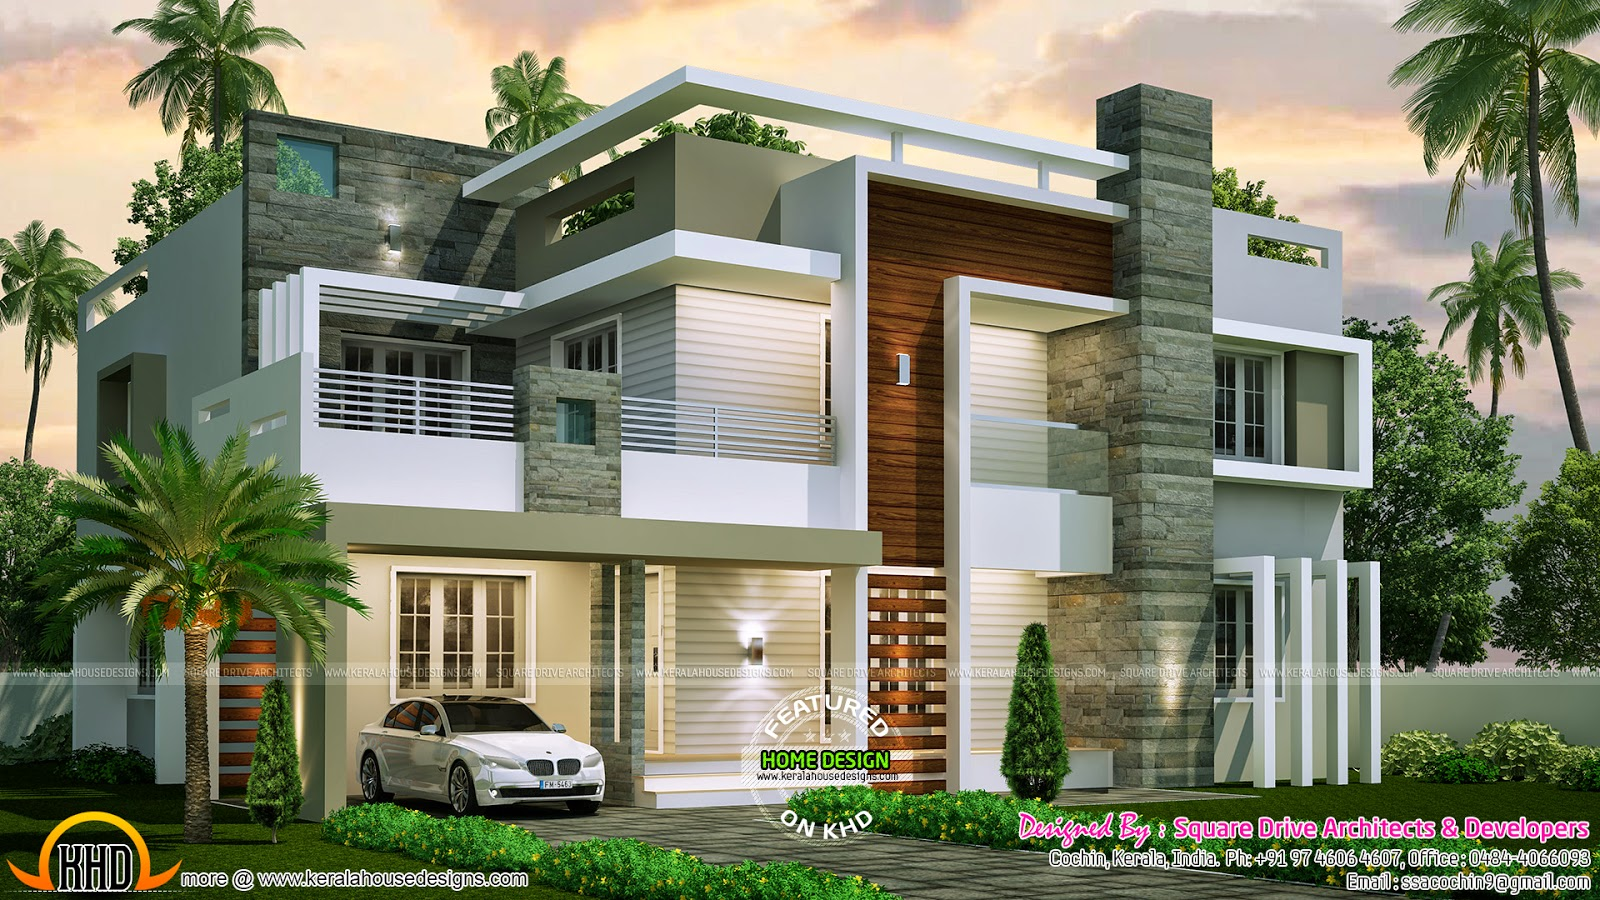 4 bedroom contemporary home design kerala home design for Small indian house plans modern